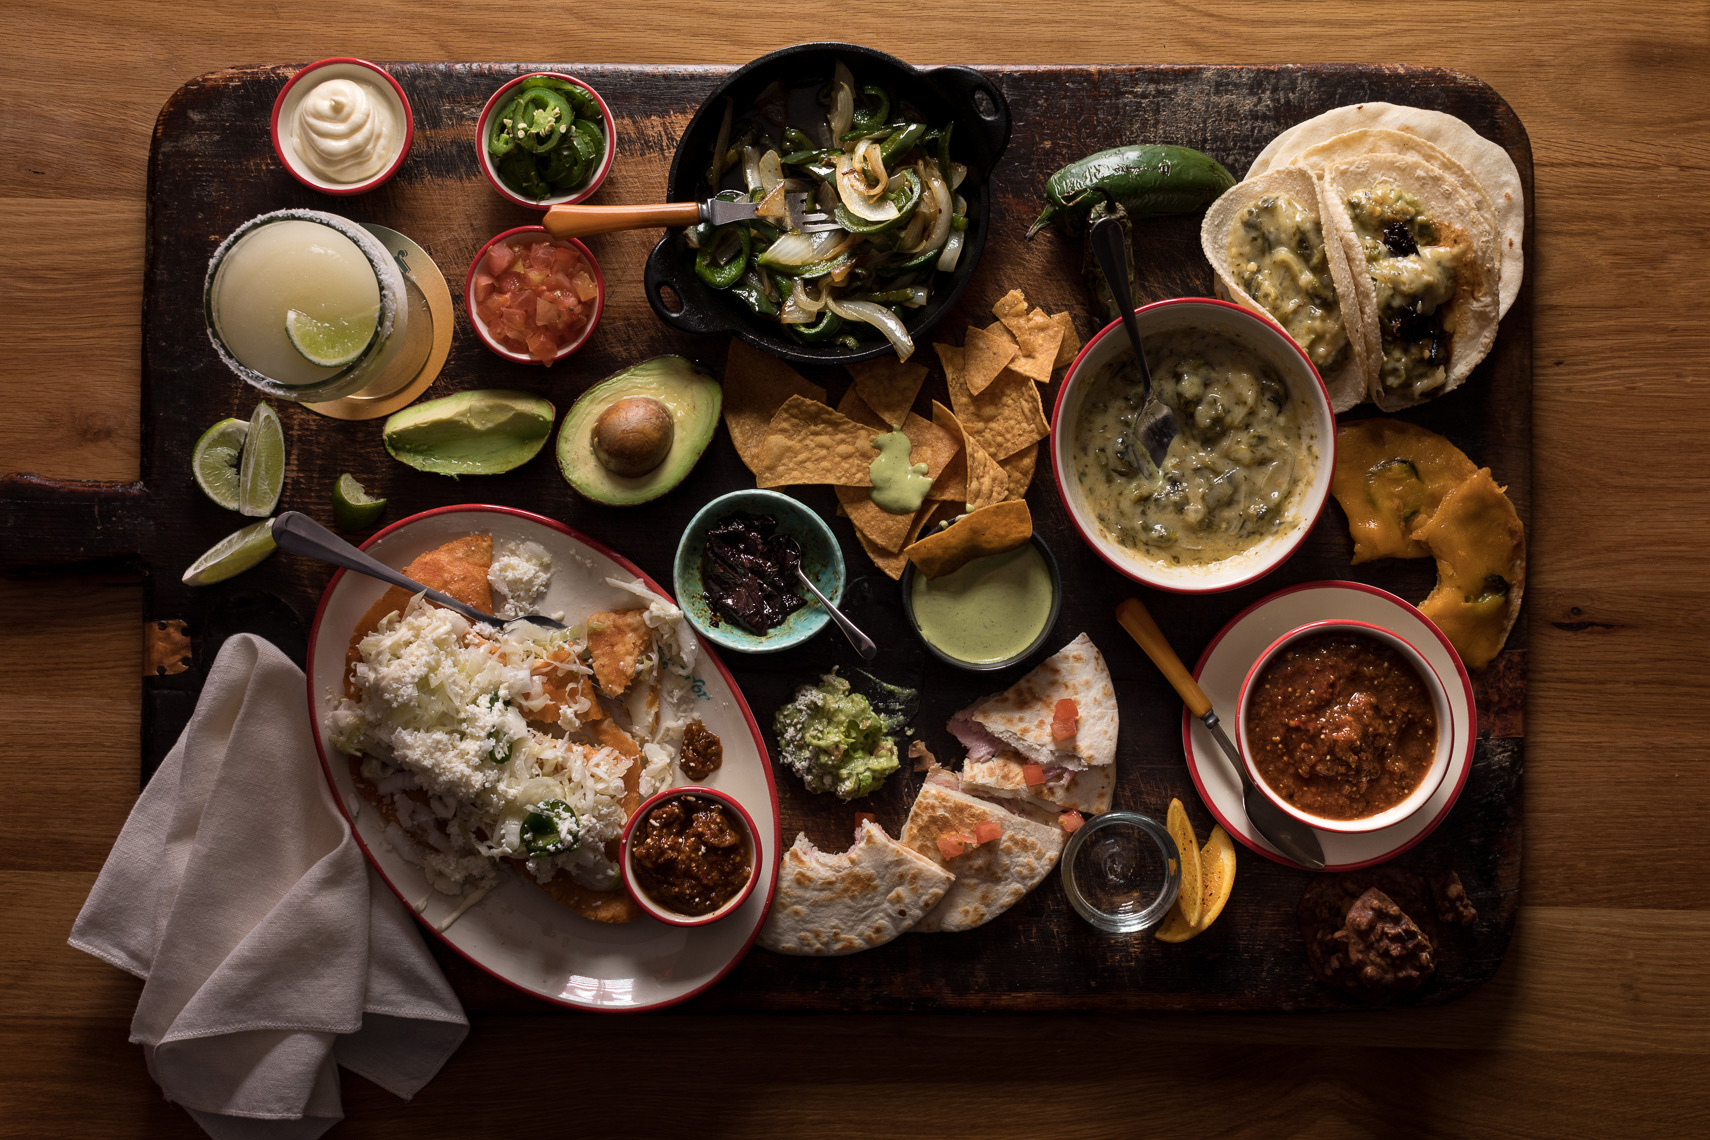 el-mirador-food-jason-risner-photography-9099